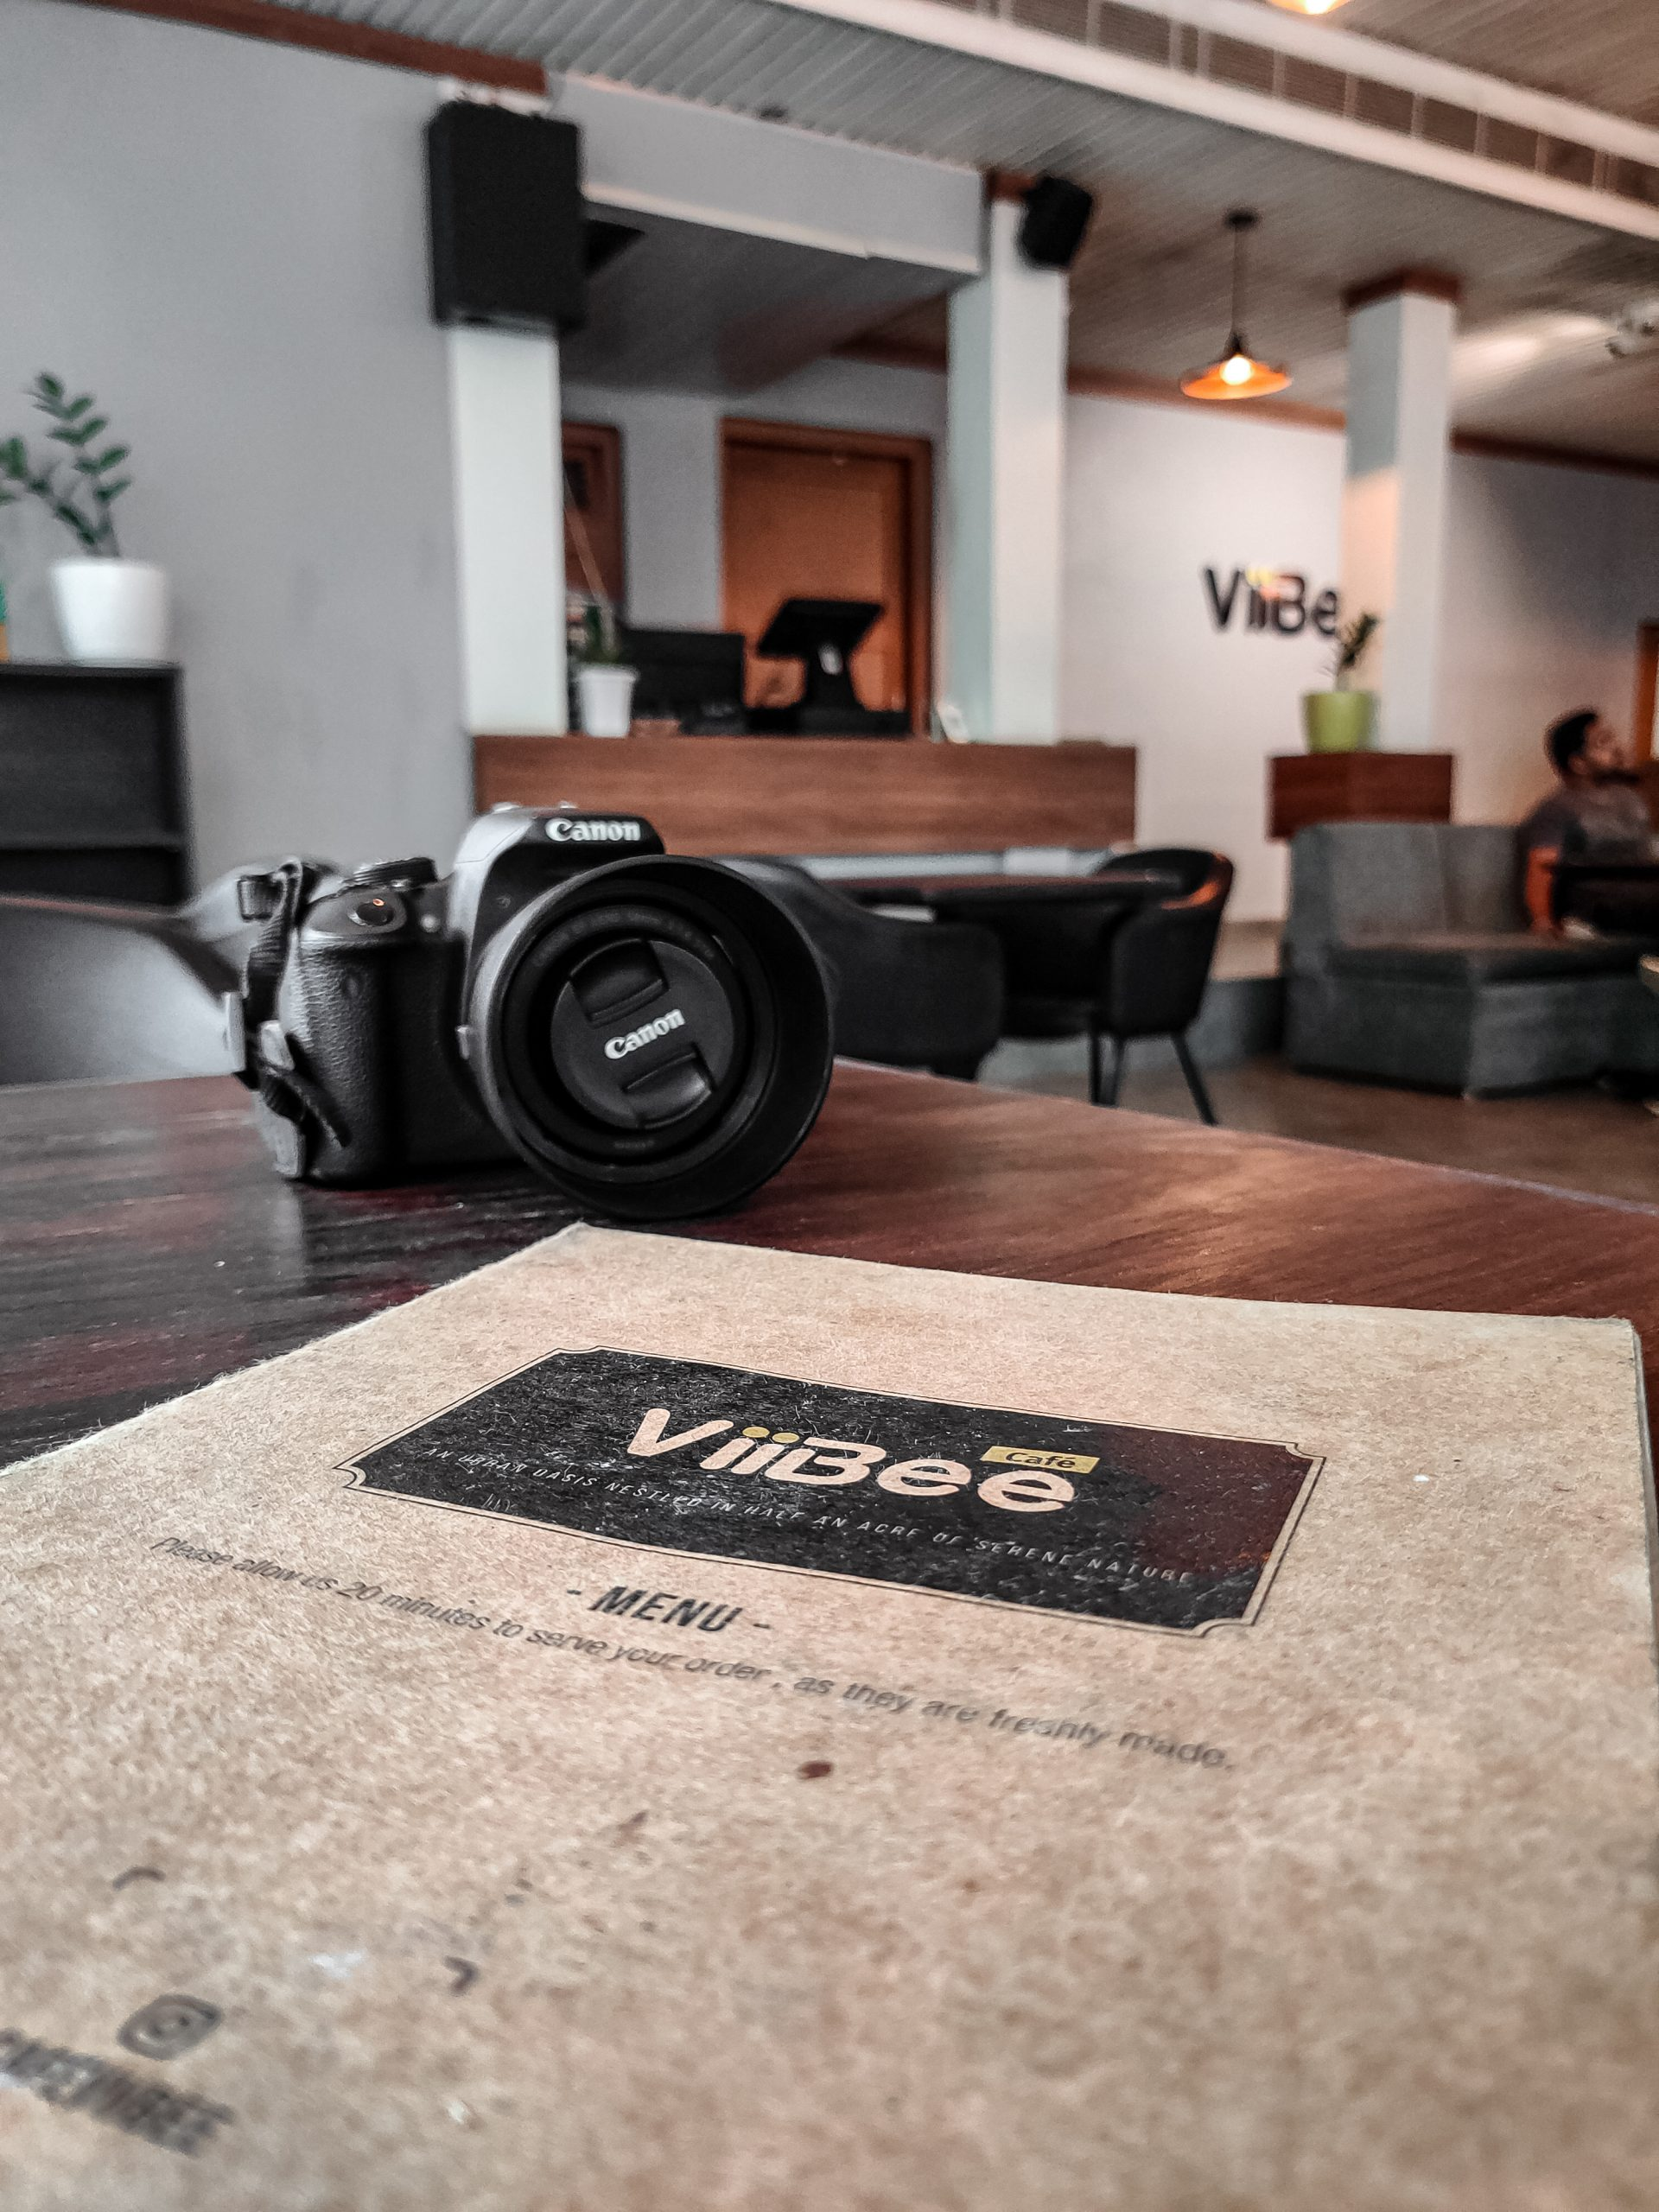 A camera on a table